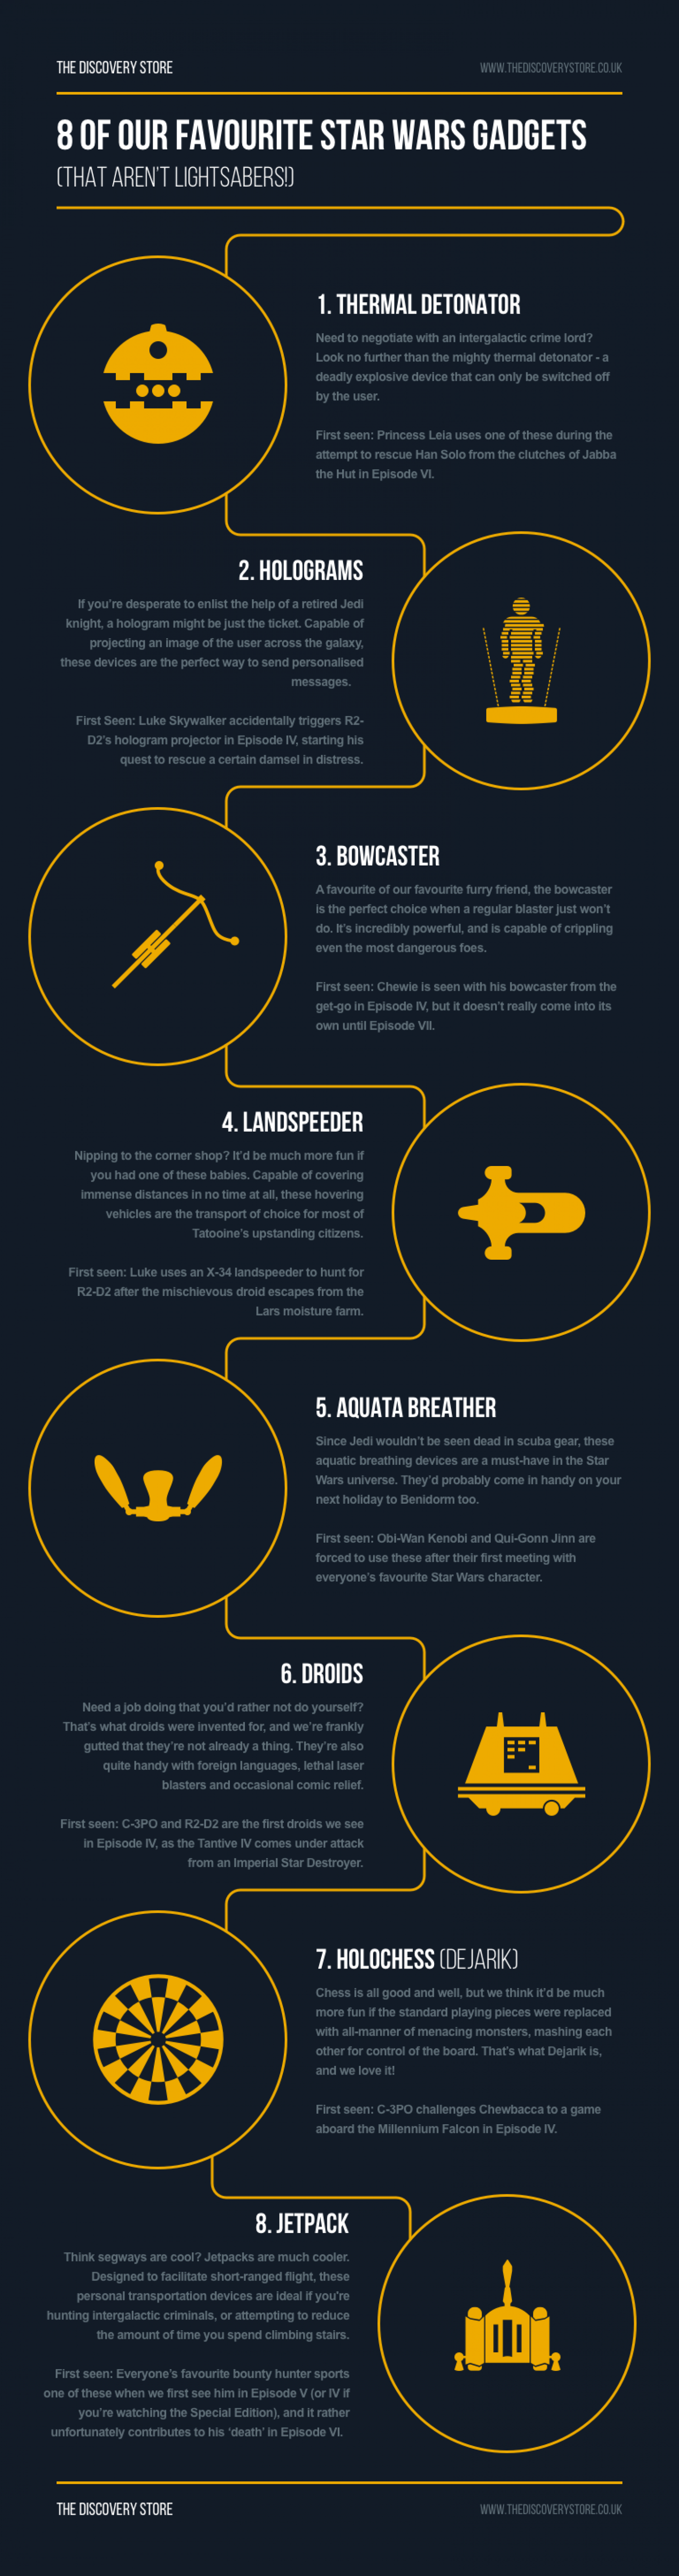 8 Of Our Favourite Star Wars Gadgets Infographic